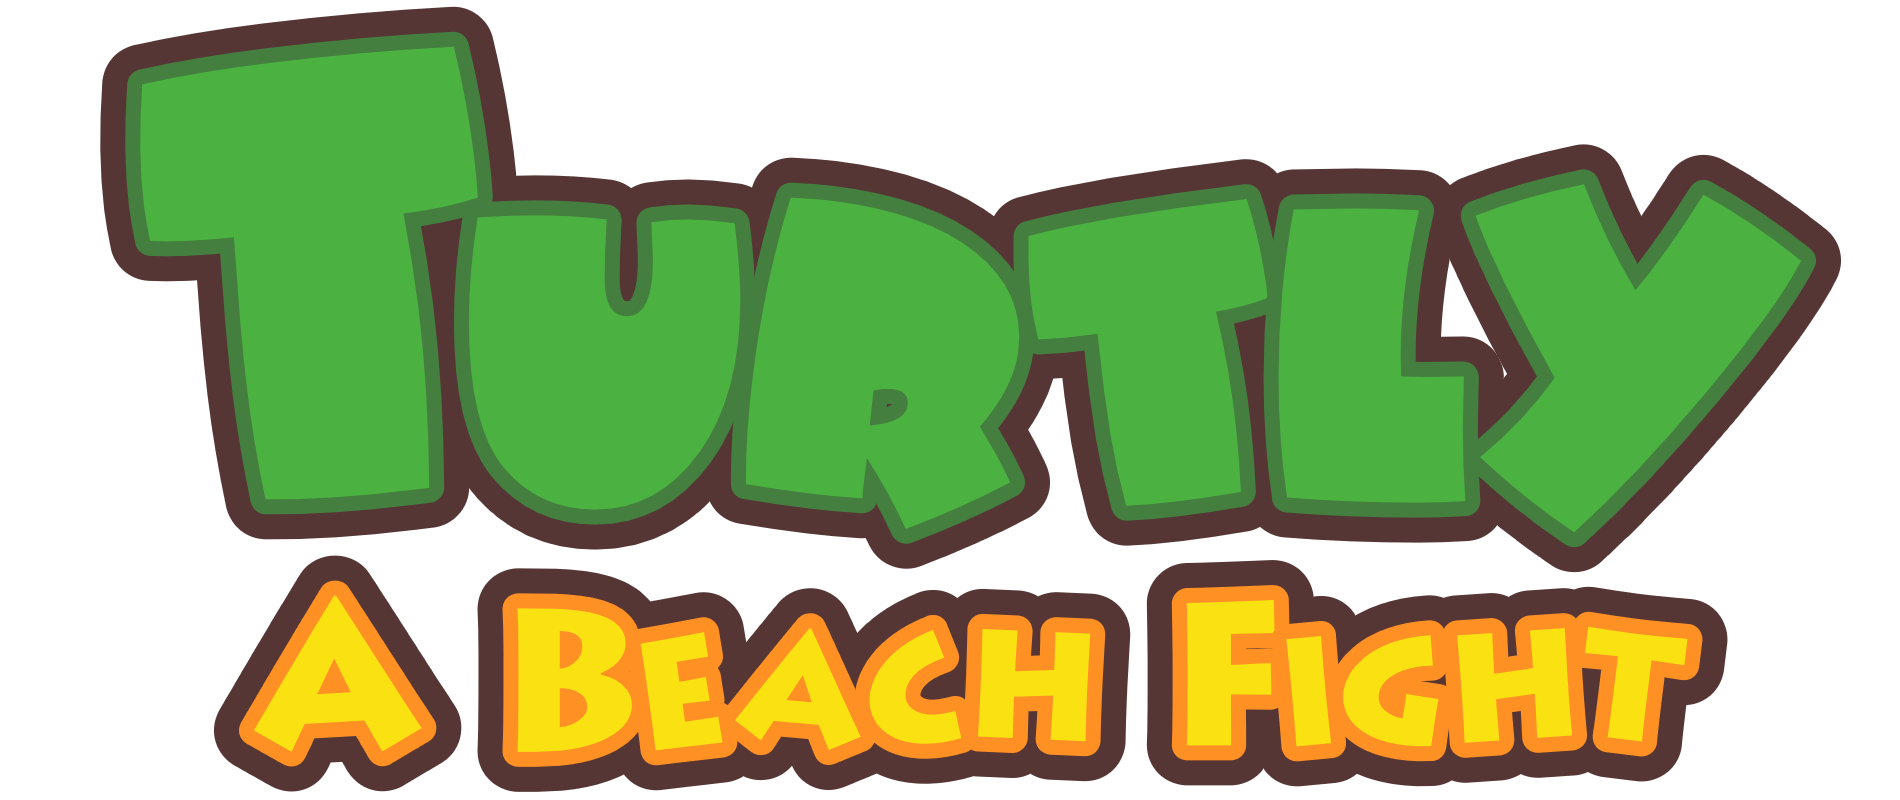 Logo - Turtly - A Beach Fight - Indie Game